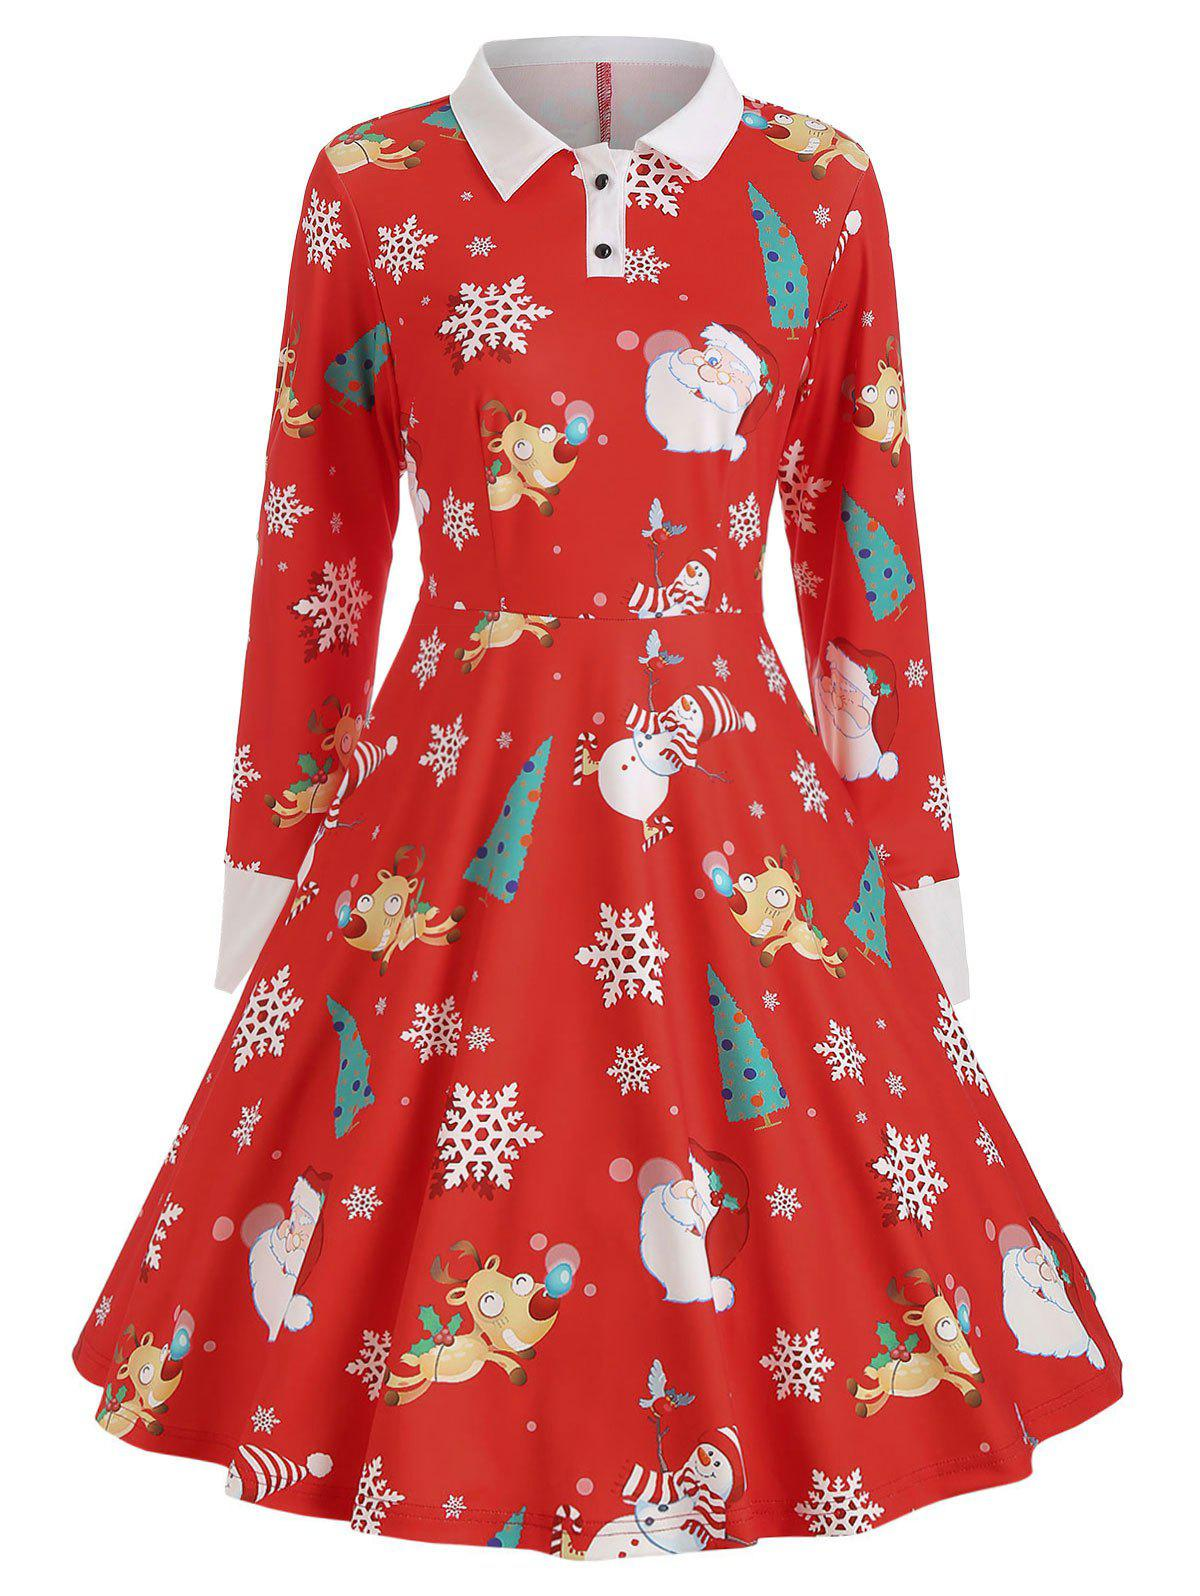 Christmas Print A-line Vintage Dress, Ruby red